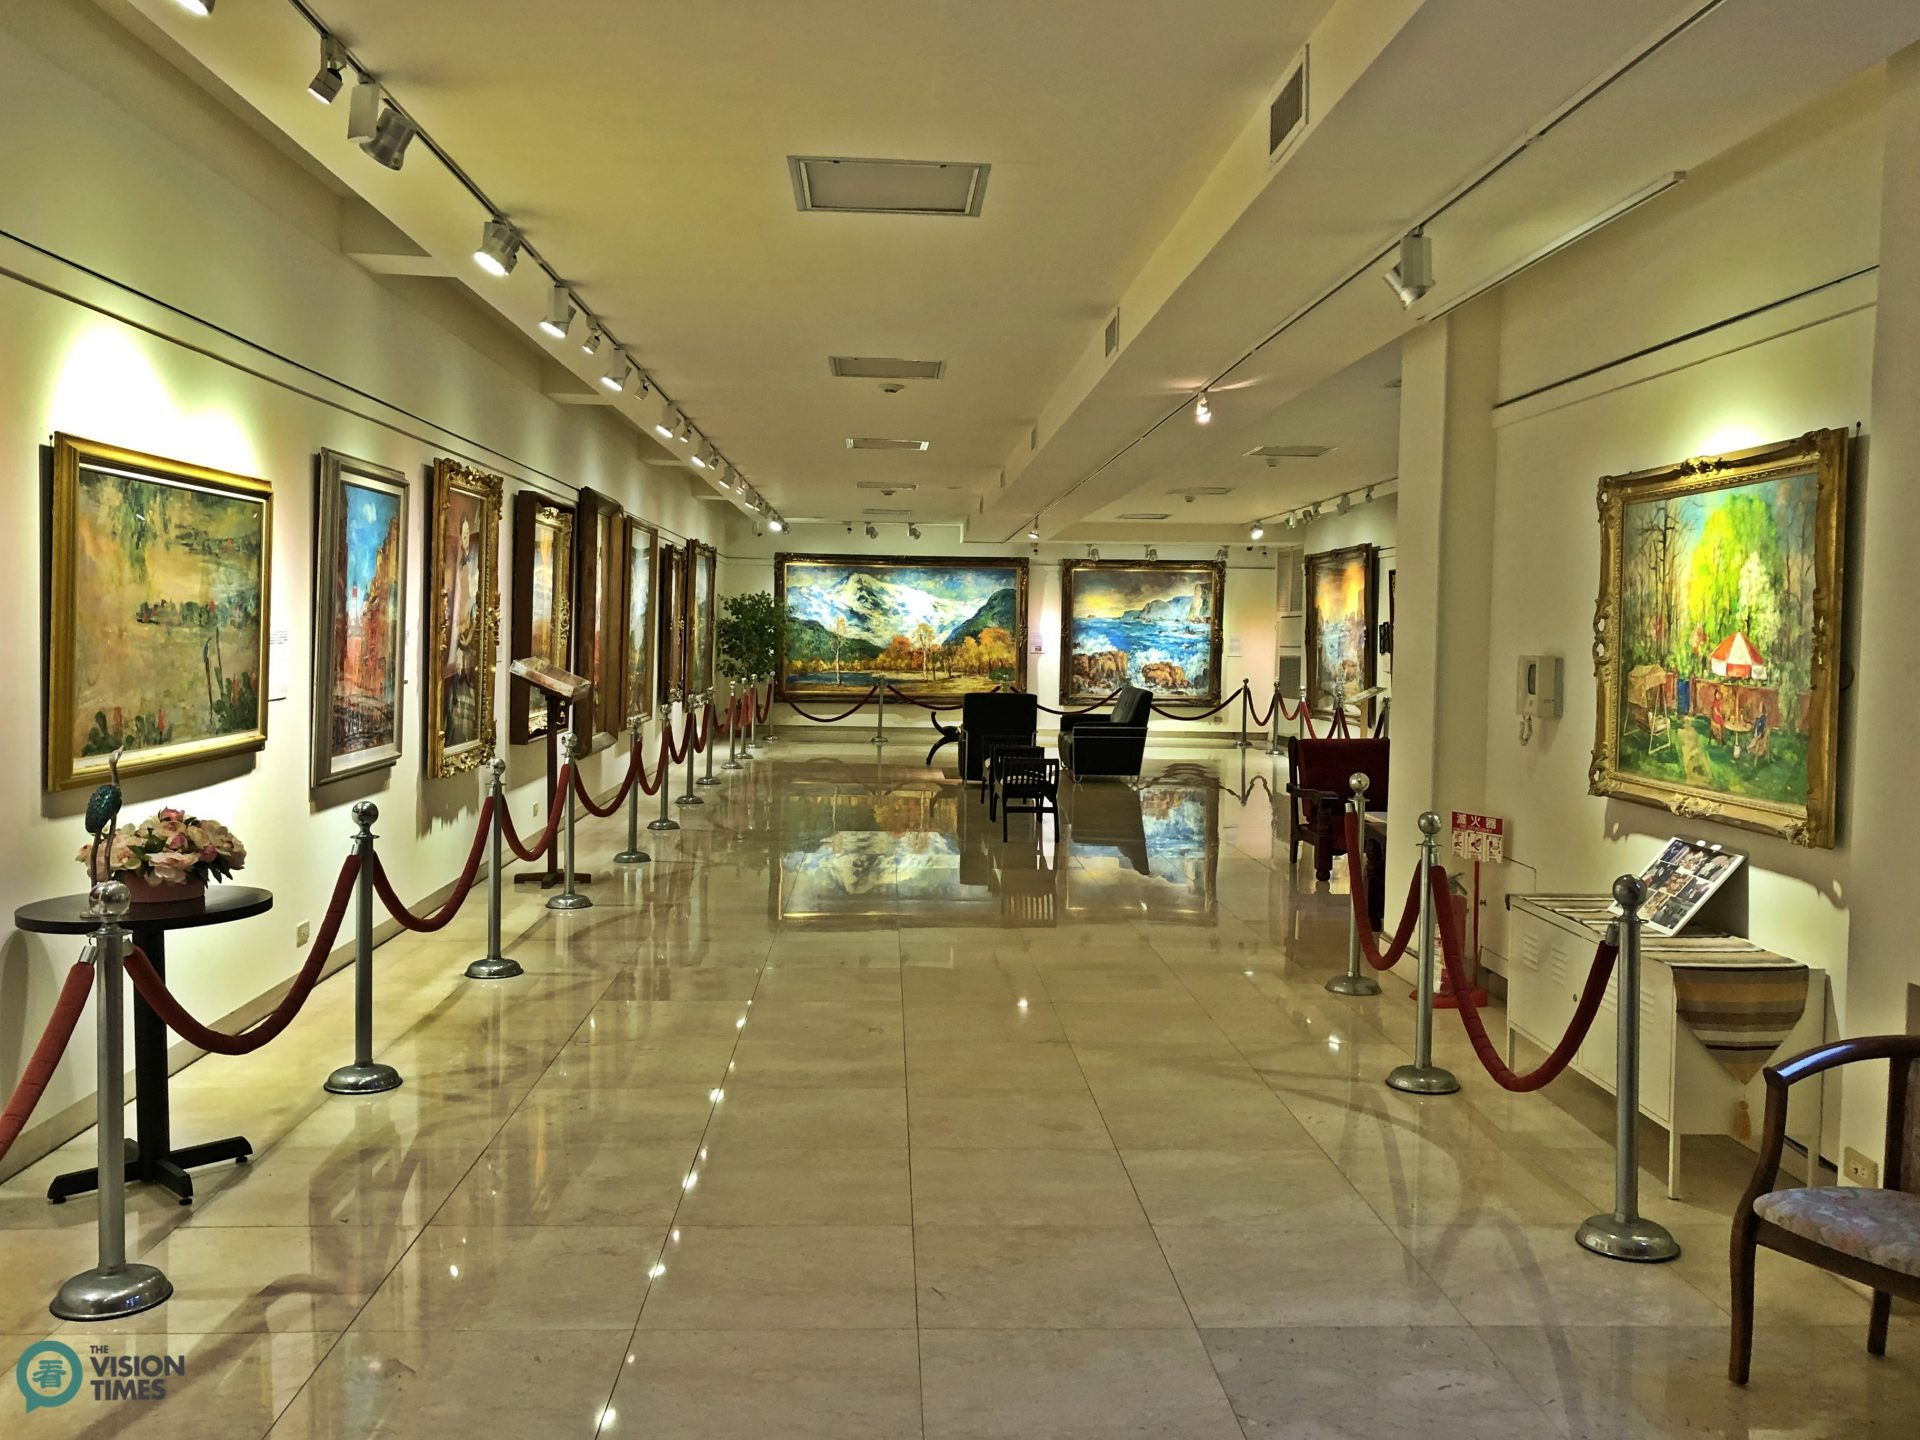 One of the five galleries at the Yang San Lang Art Museum. (Image: Billy Shyu / Vision Times)